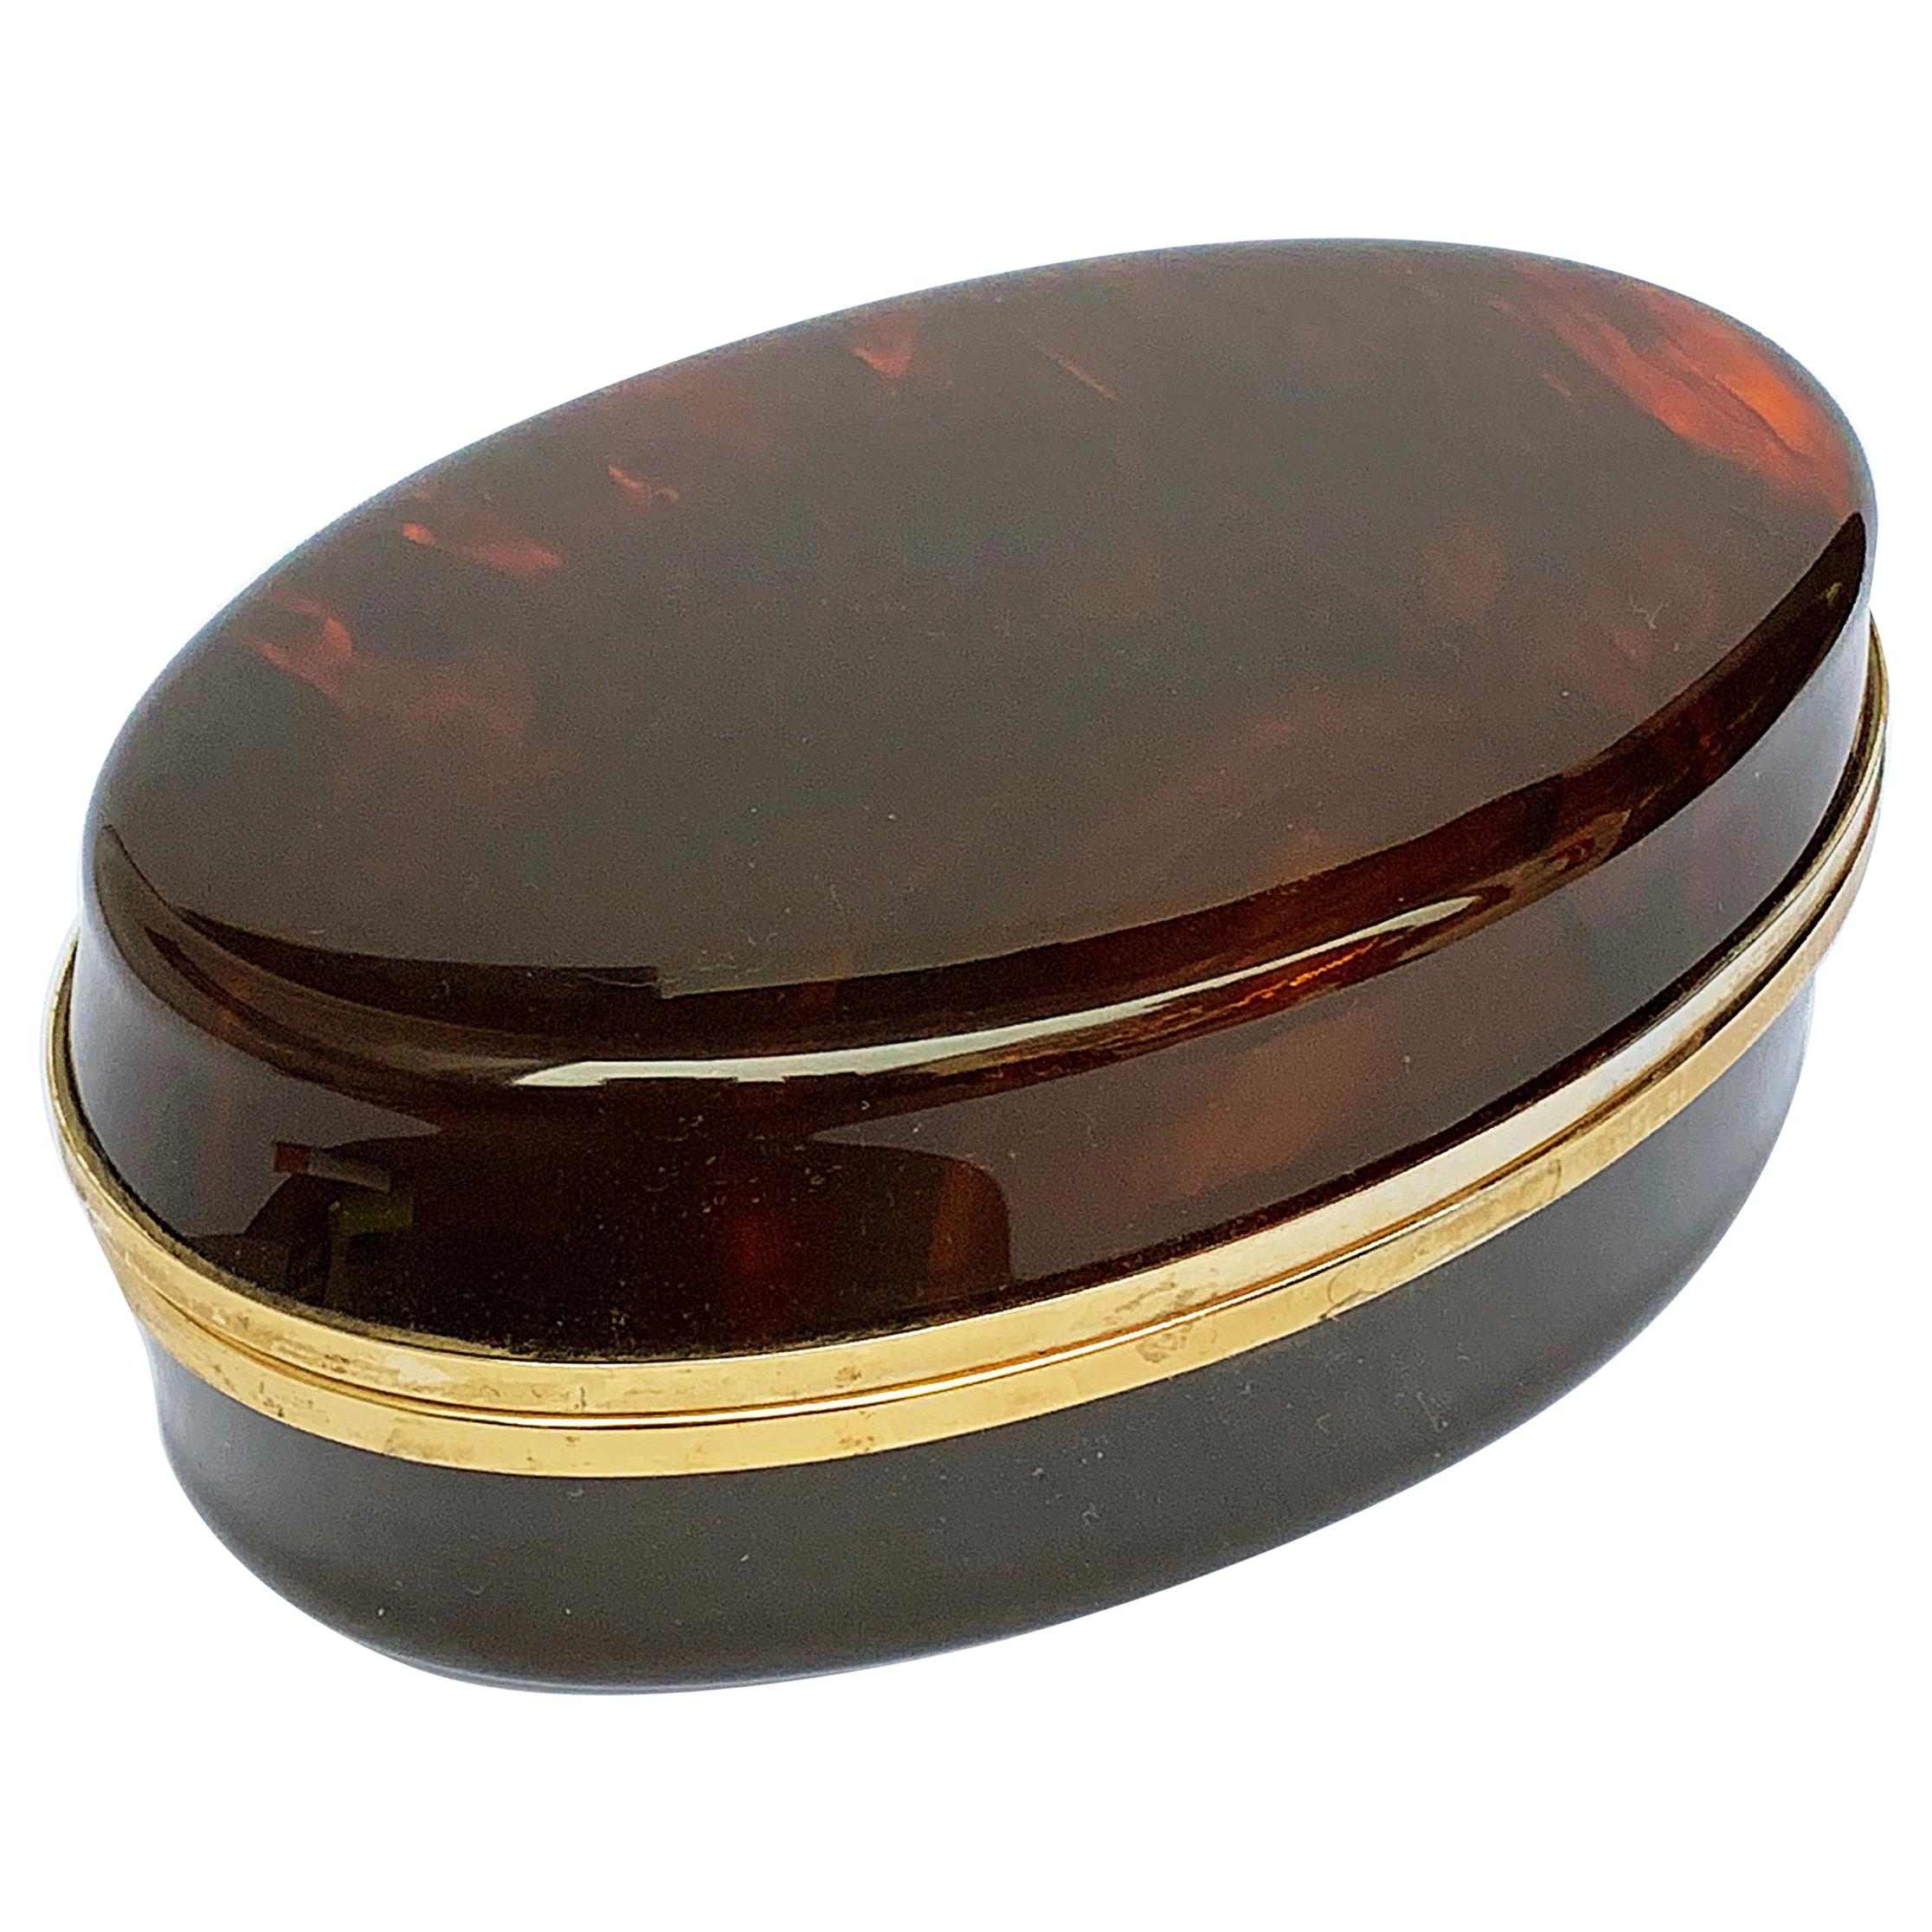 Box in Lucite, tortoiseshell effect and brass, Christian Dior 1970